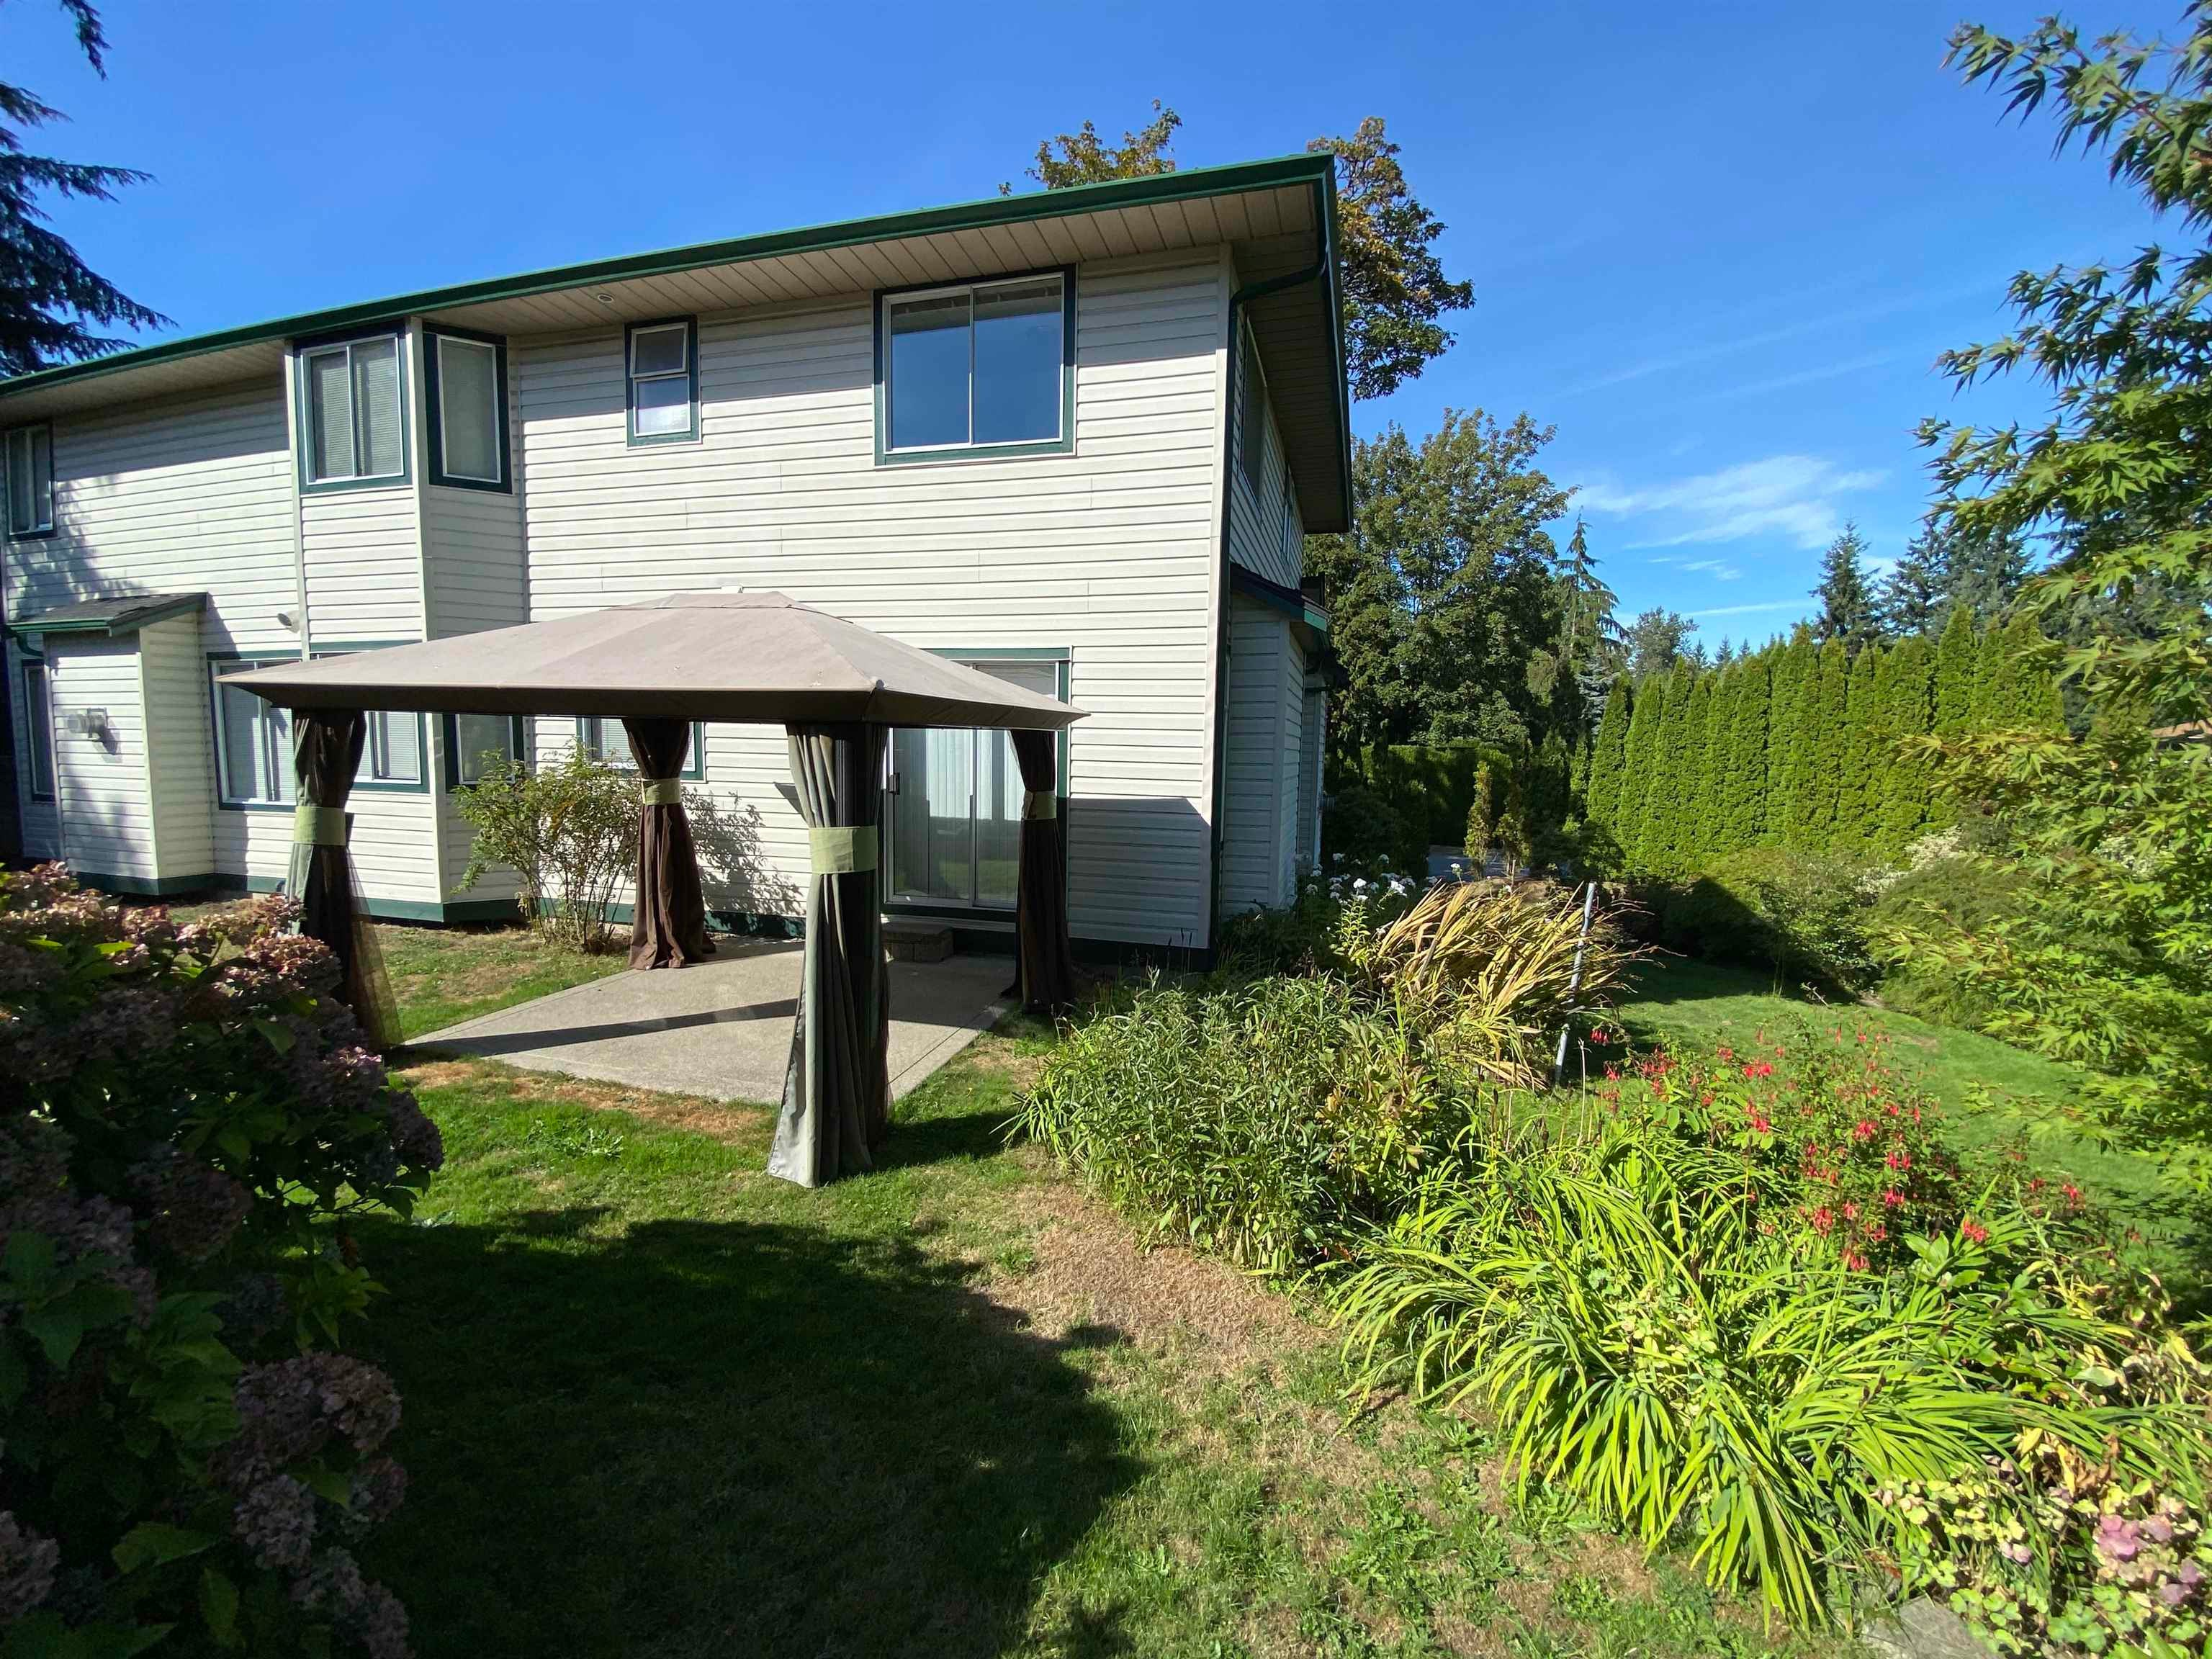 19950 48A AVENUE - Langley City House/Single Family for sale, 4 Bedrooms (R2615832) - #23